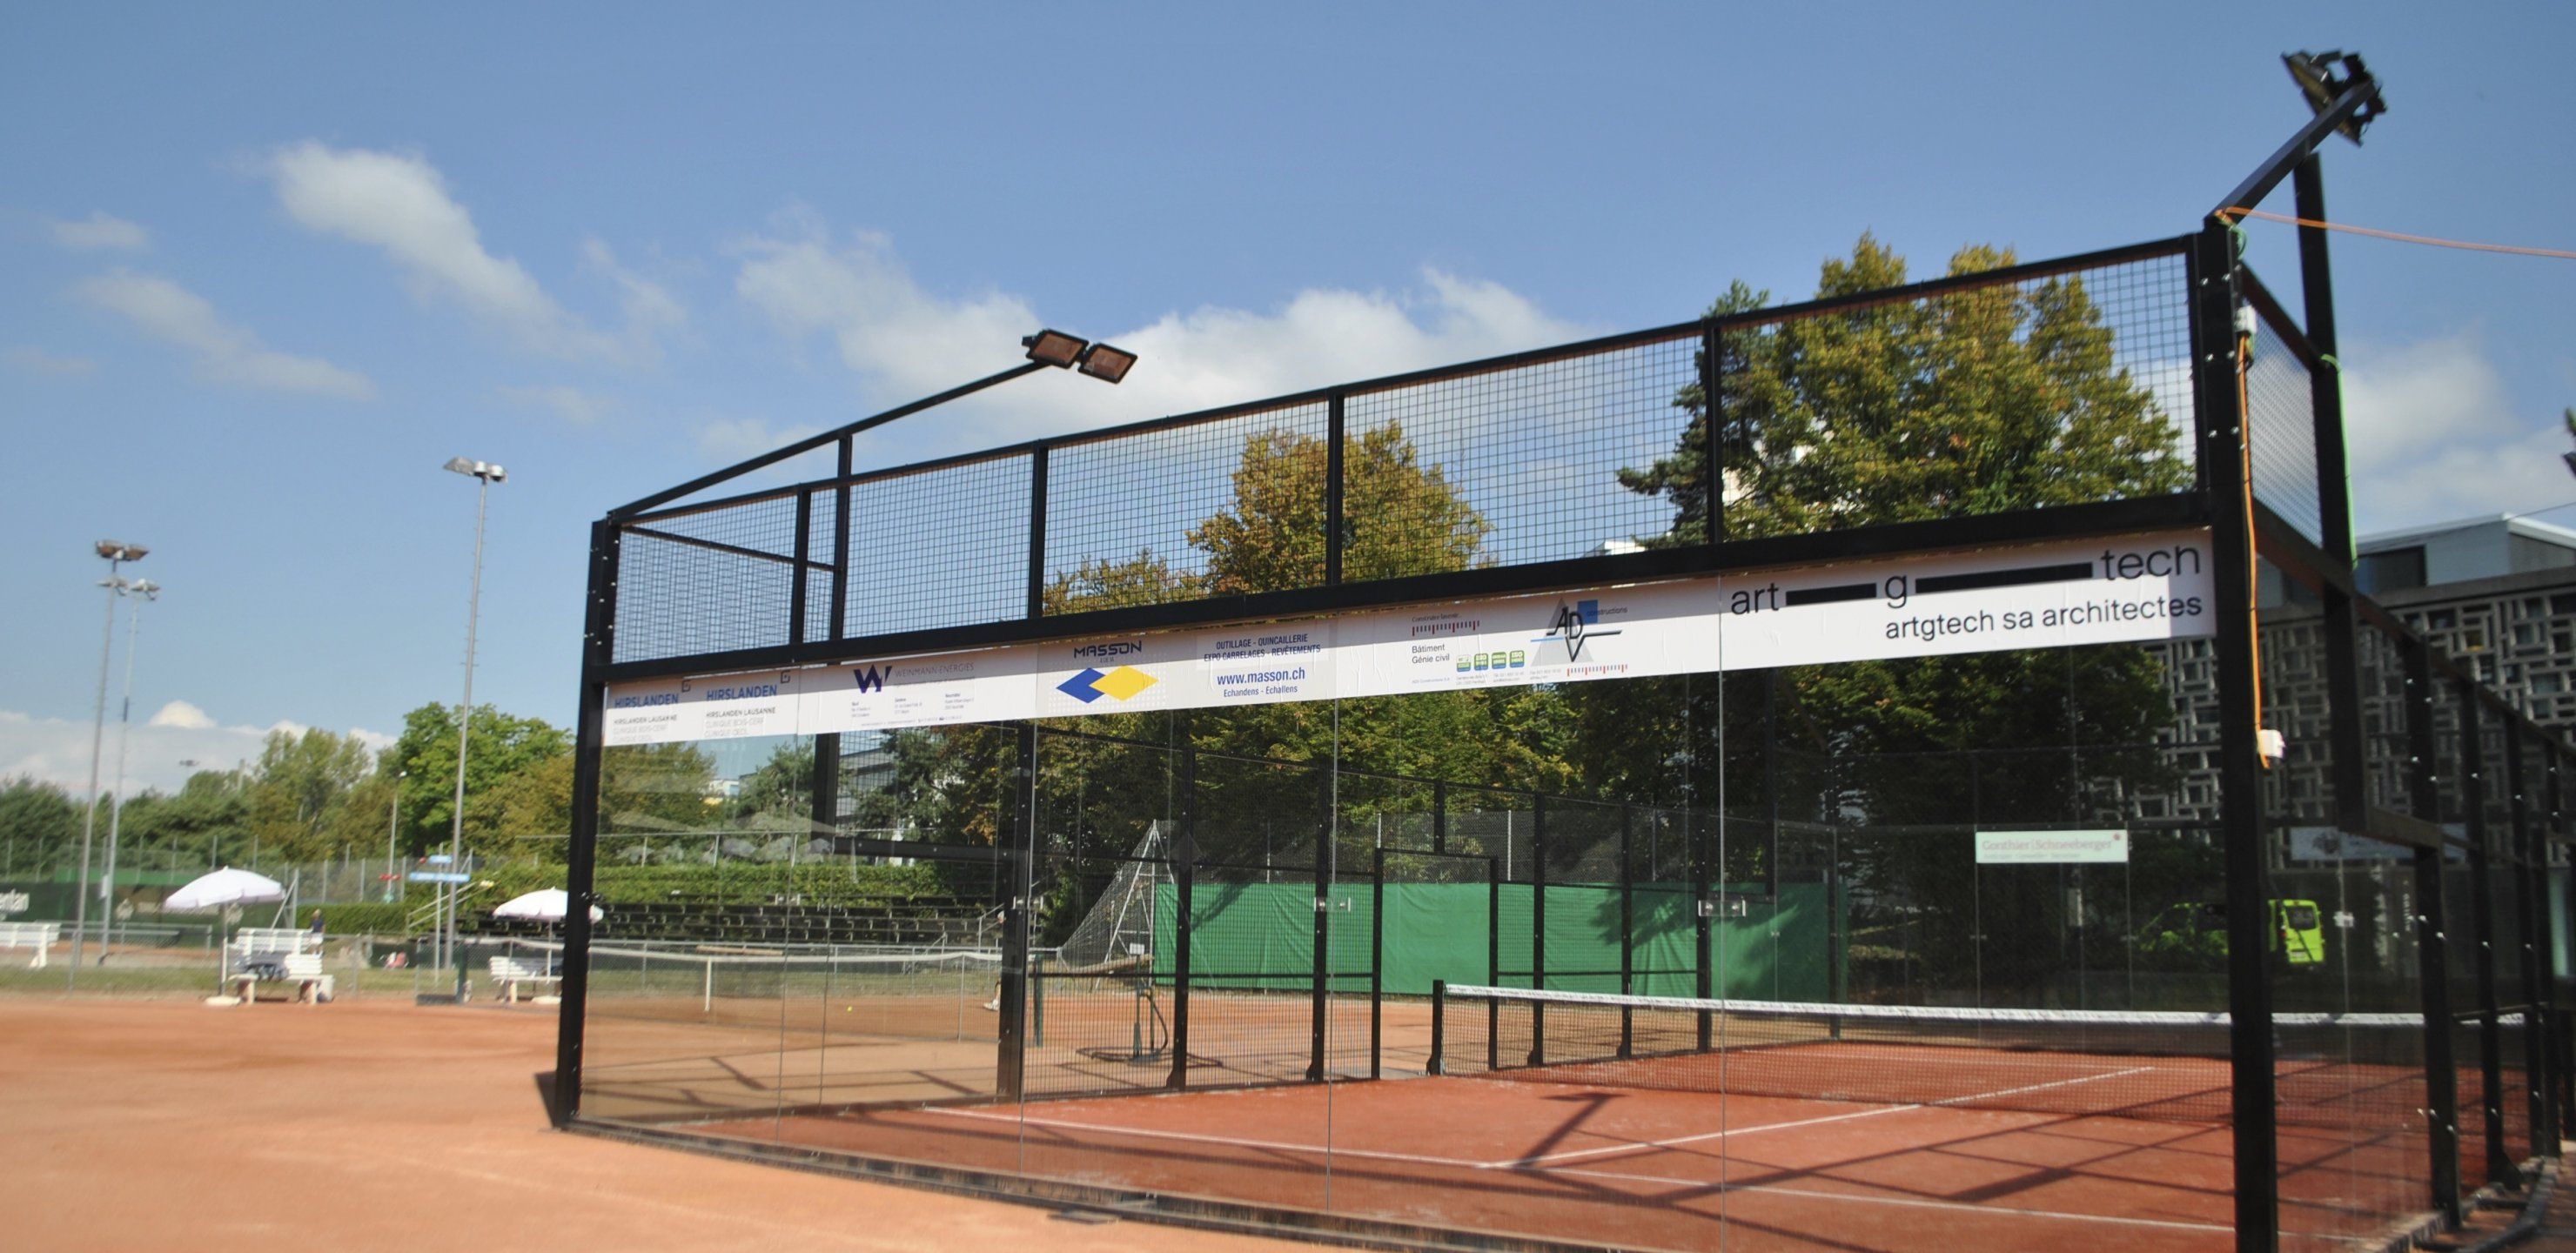 files/images/ambiance_padel_2960x1440.jpg